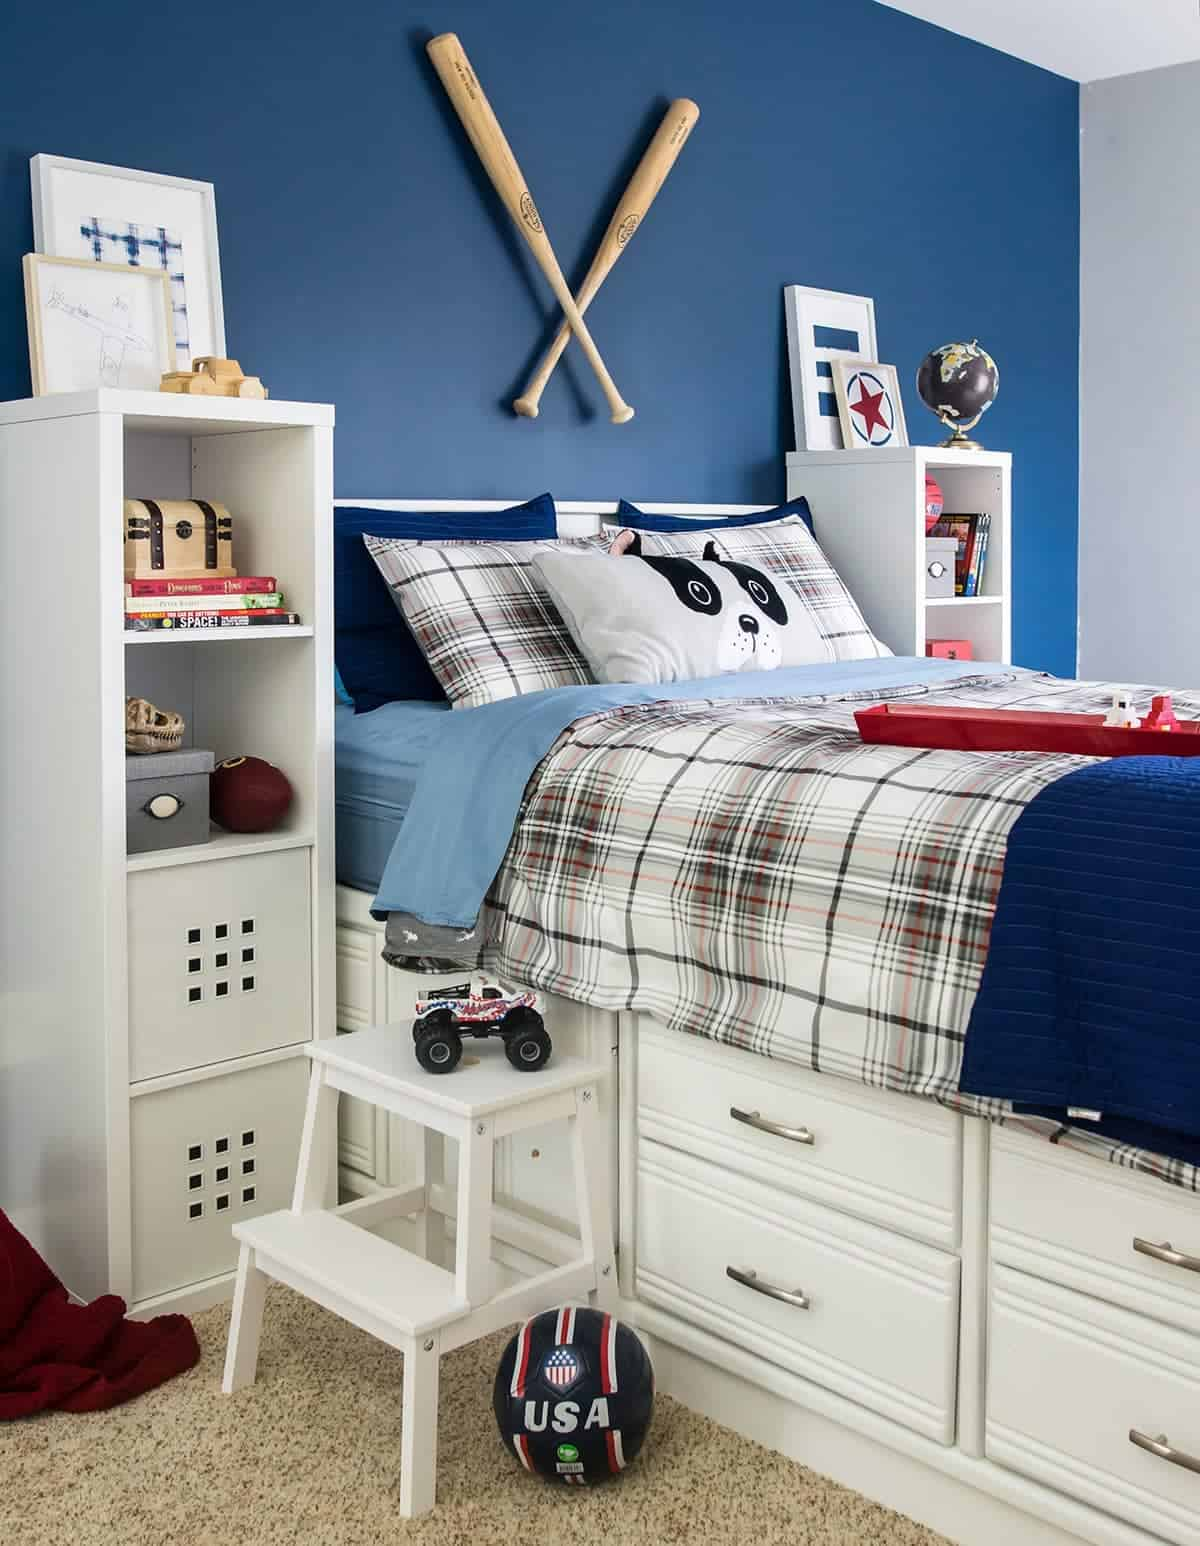 Boy's room after makeover with refinished white captain's bed and step stool with plaid bedding, white lockers, and various sports related decor.